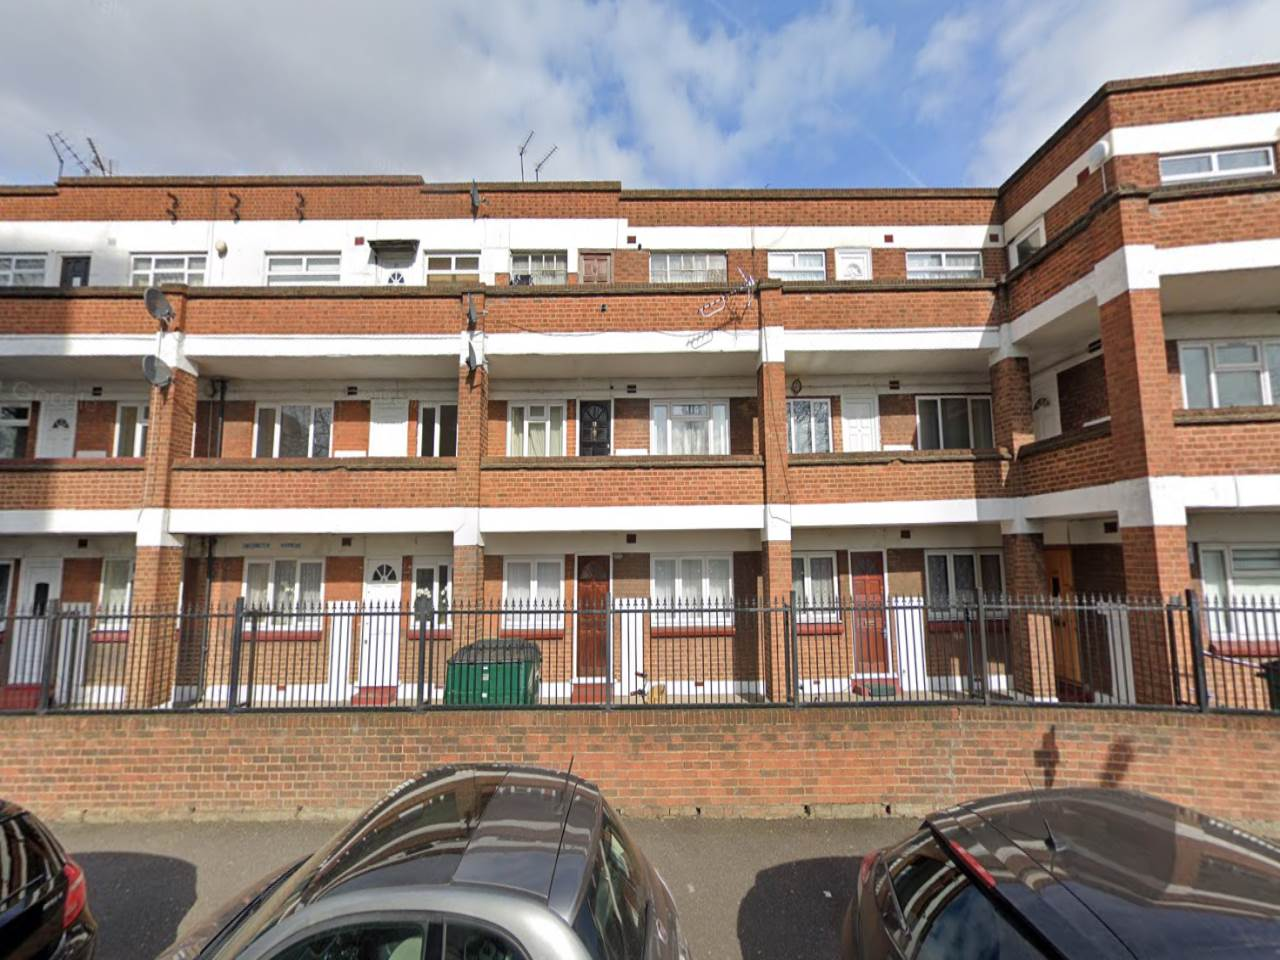 1 bed flat to rent in Leyton, E10